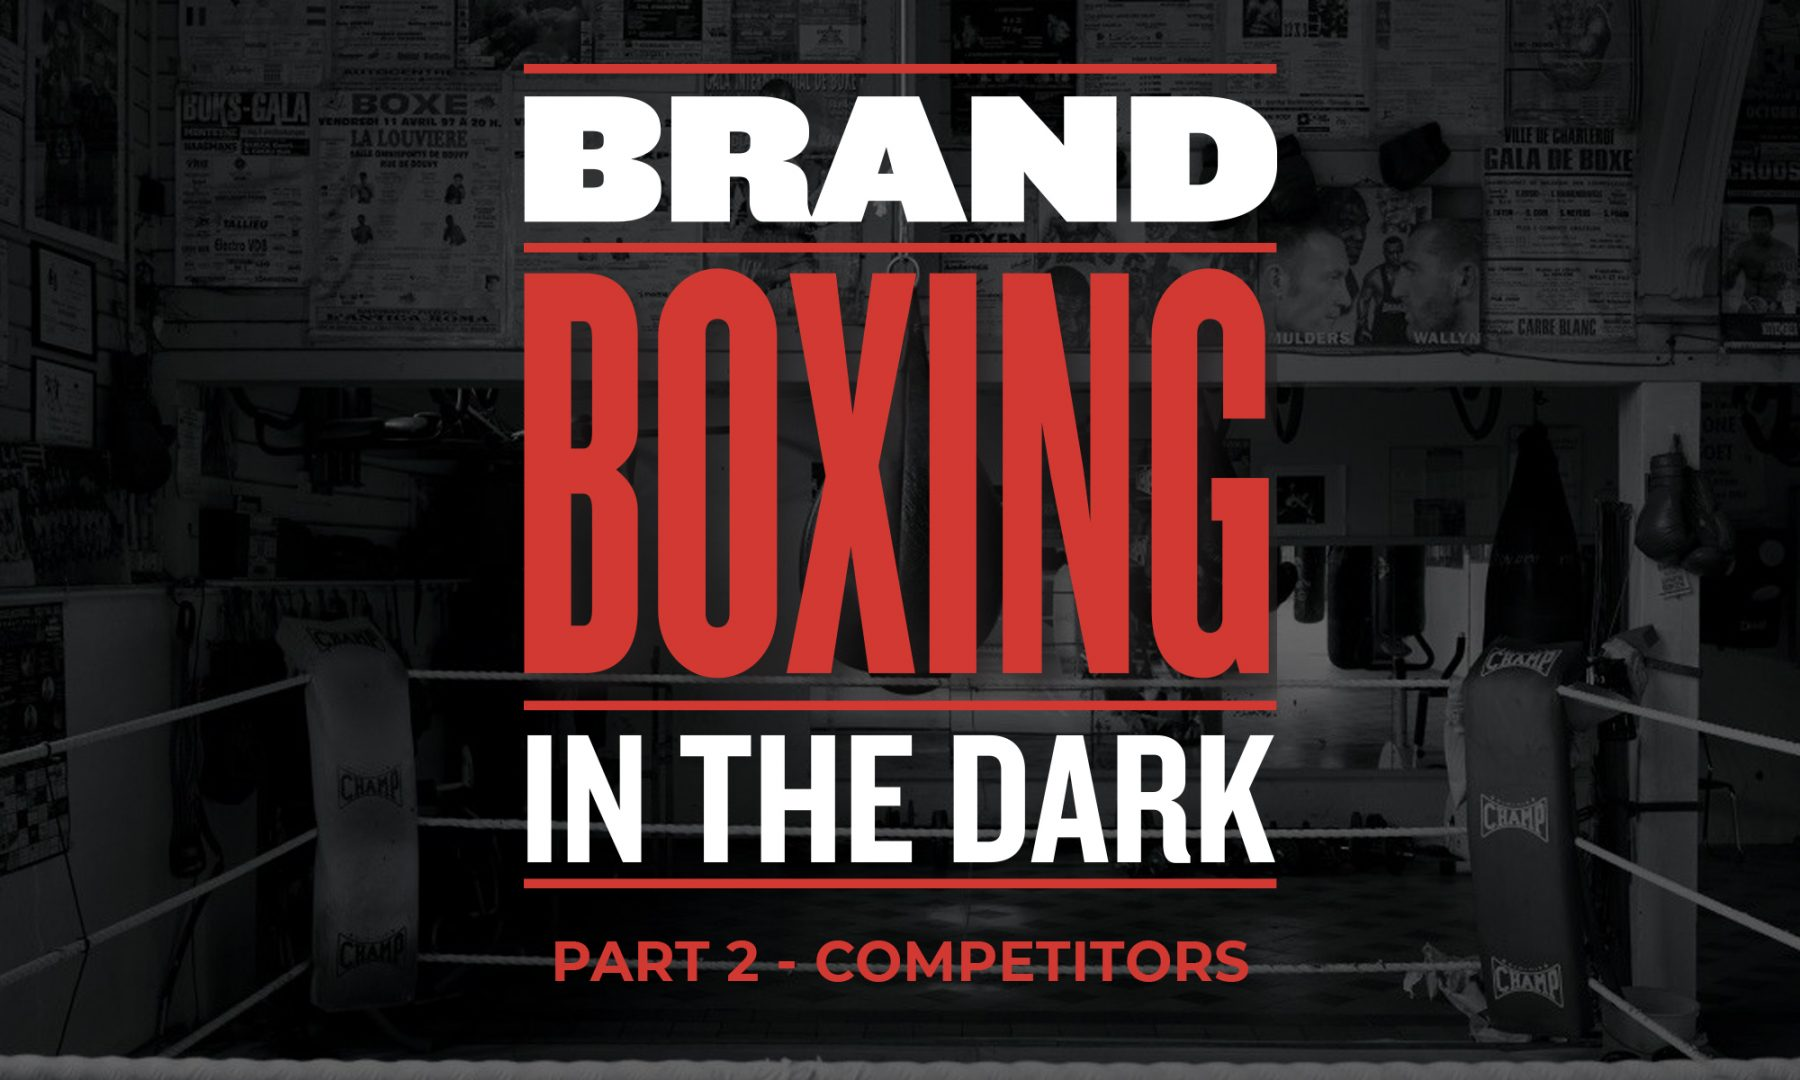 Rebrand Boxing in the dark - Competitors